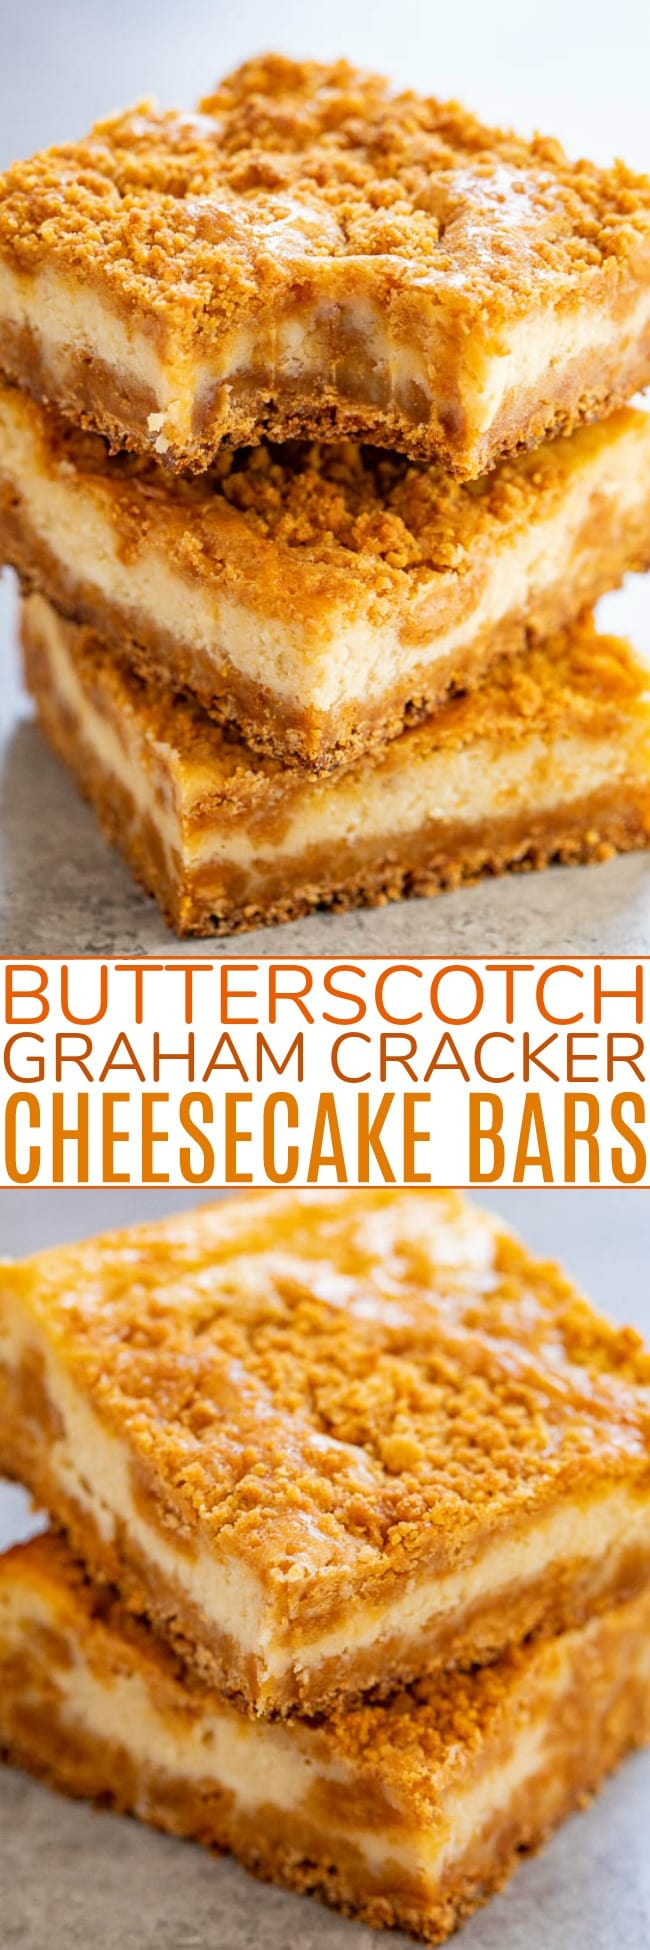 Butterscotch Cheesecake Bars — A super chewy crust made with butterscotch chips and graham cracker crumbs that also doubles as the topping!! The silky smooth tangy cheesecake layer is the PERFECT contrast! A simple recipe that FAR EXCEEDED expectations!!